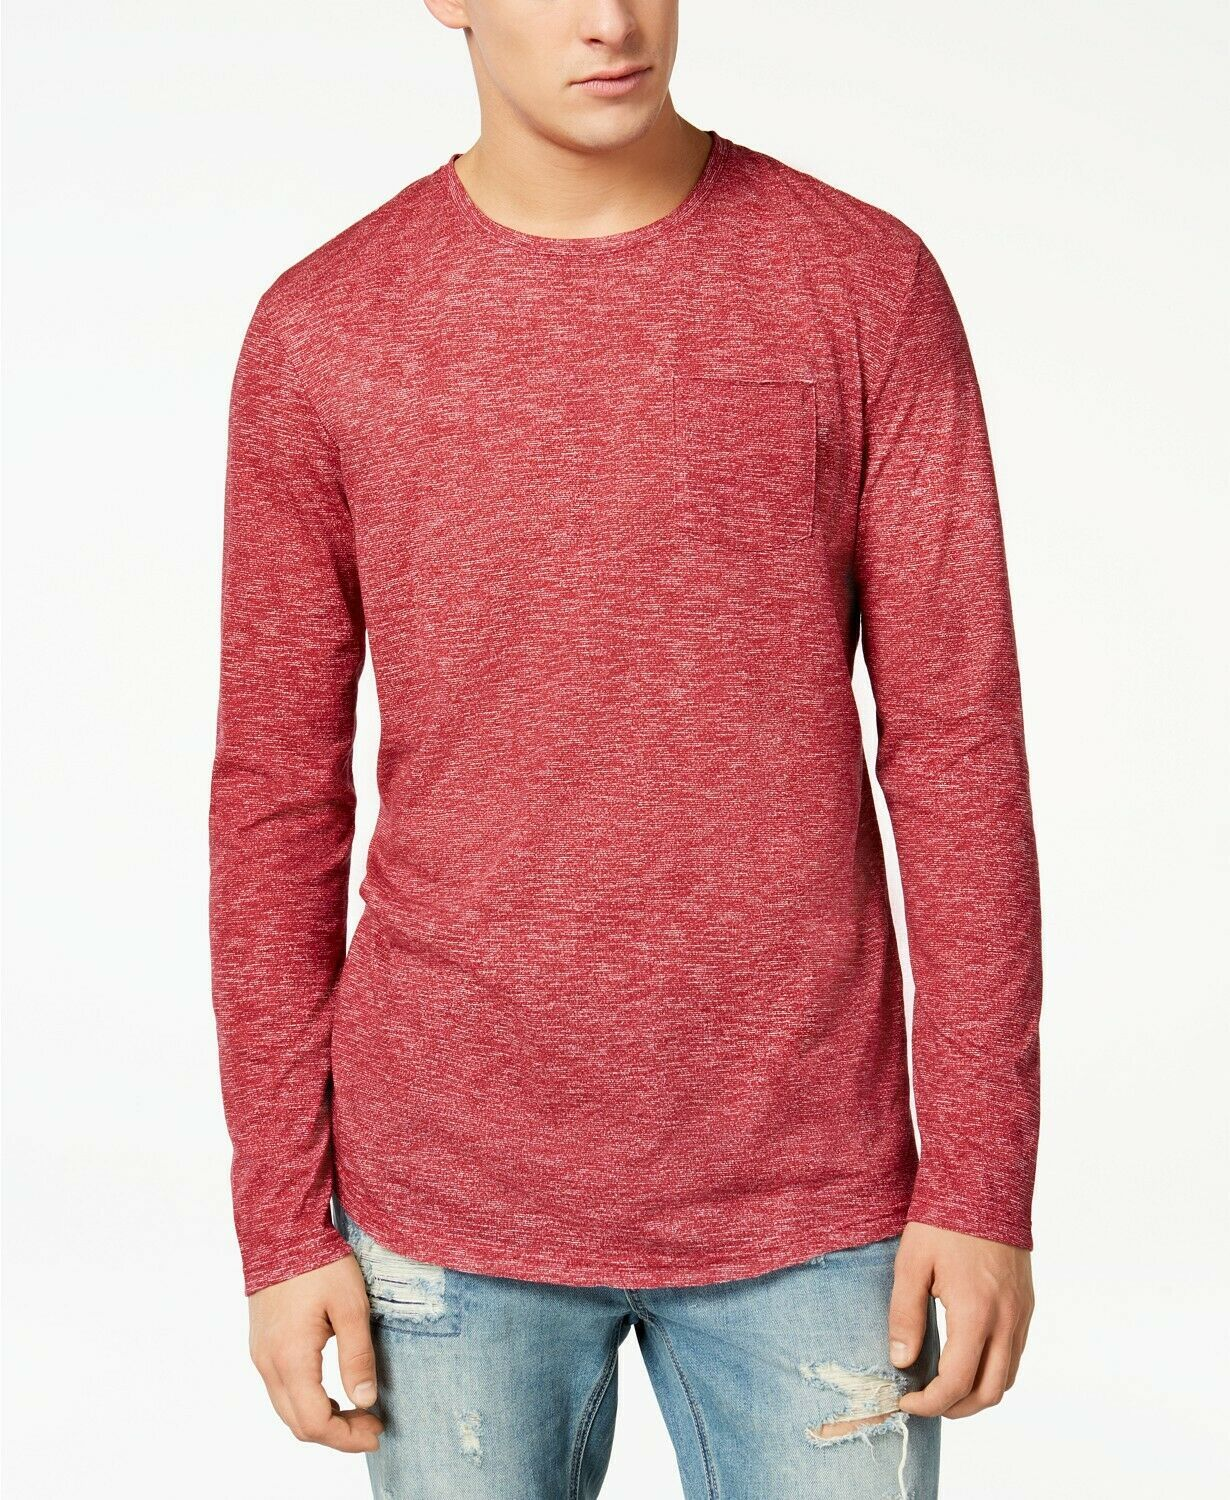 American Rag Men's Heathered Long Sleeve T-Shirt, Worn Red, Size S, MSRP $30